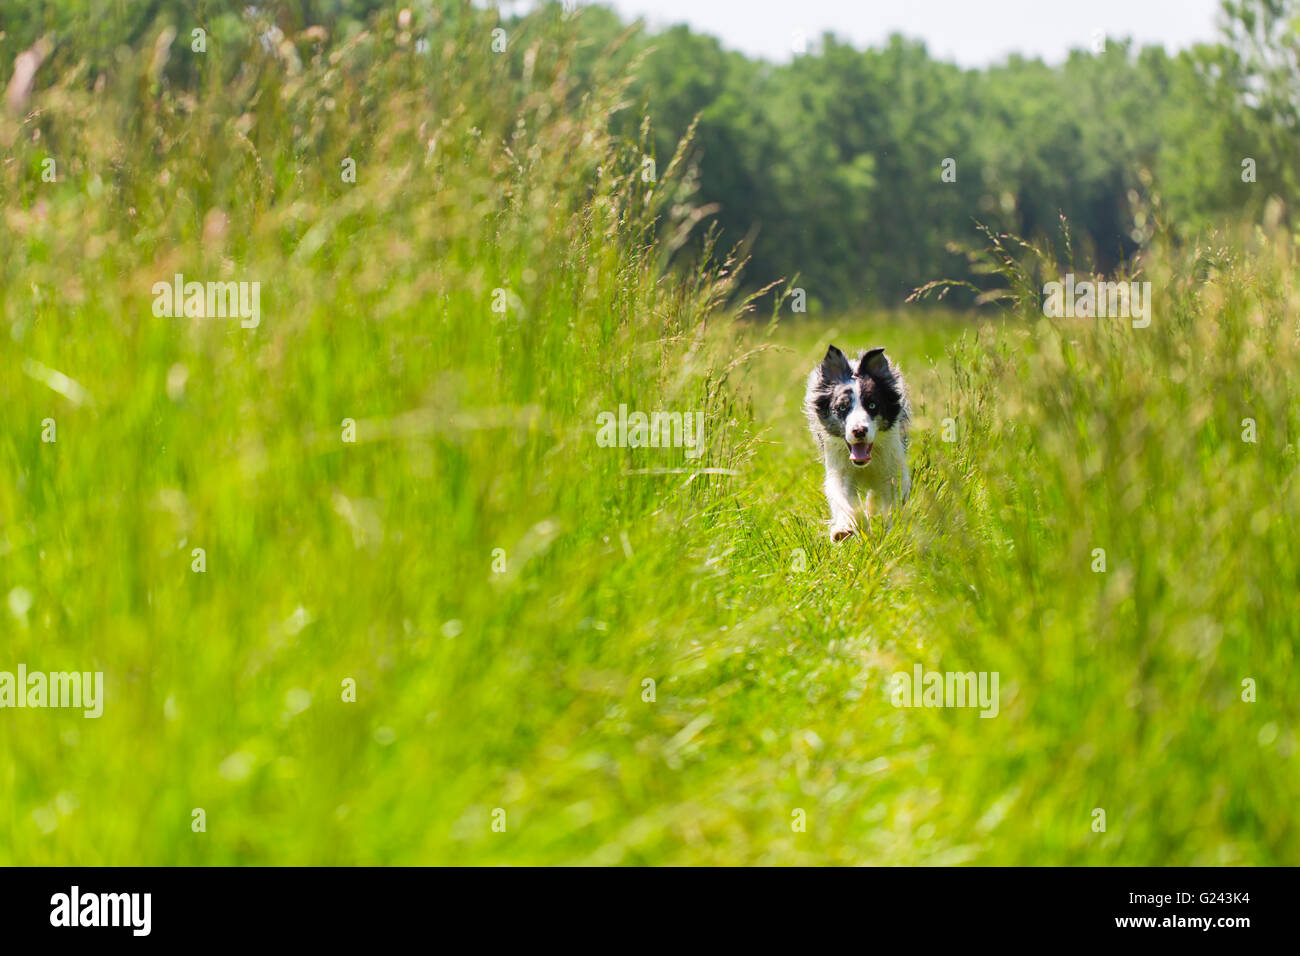 Border Collie in the grass running and training - Stock Image